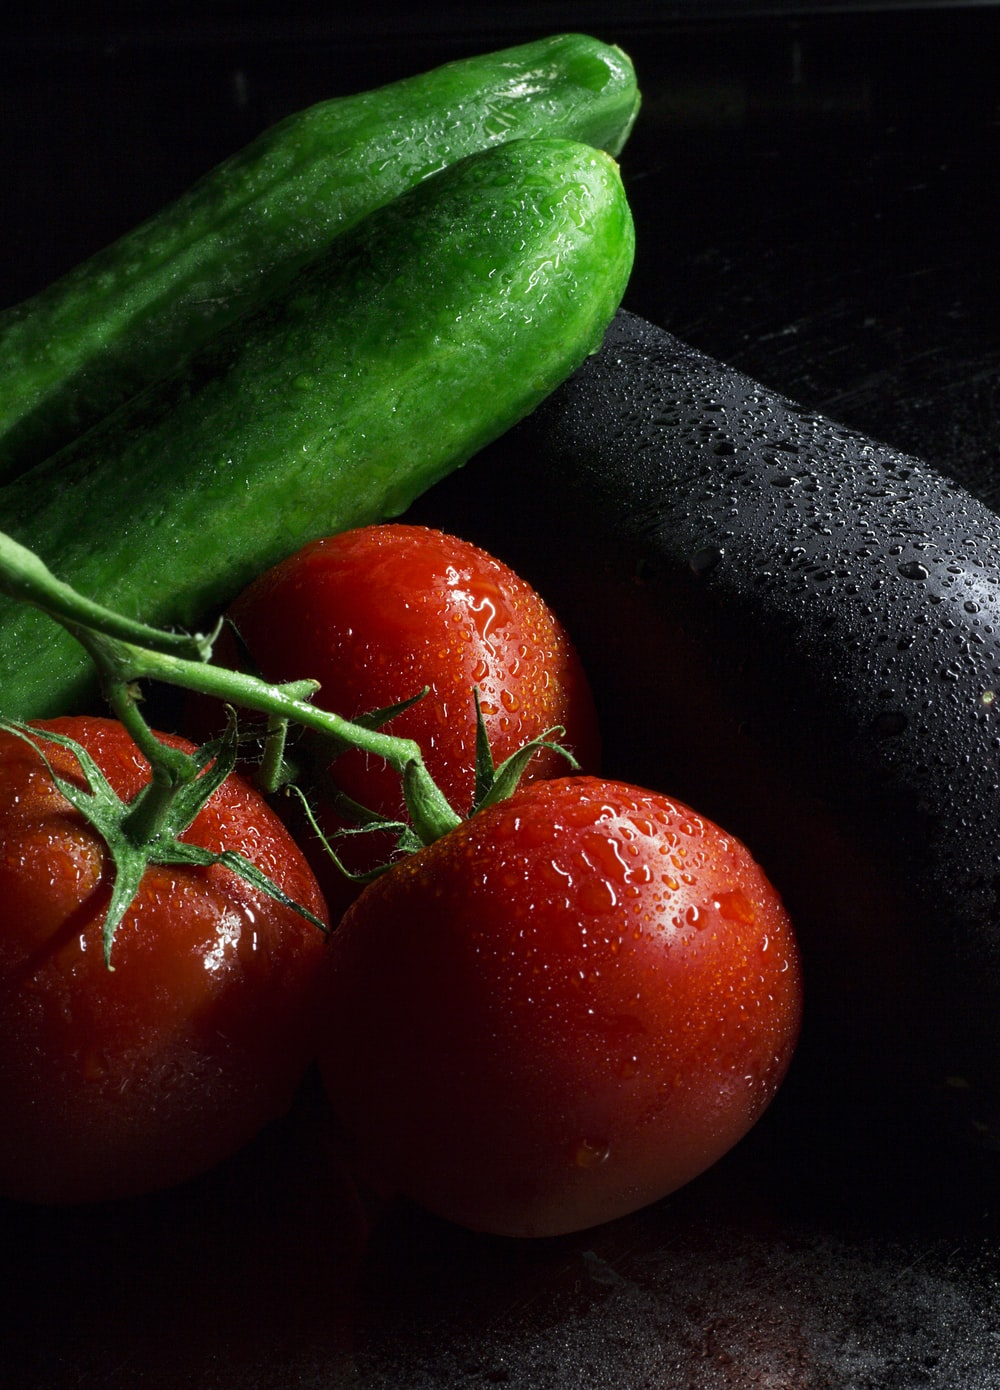 red tomato beside green cucumber